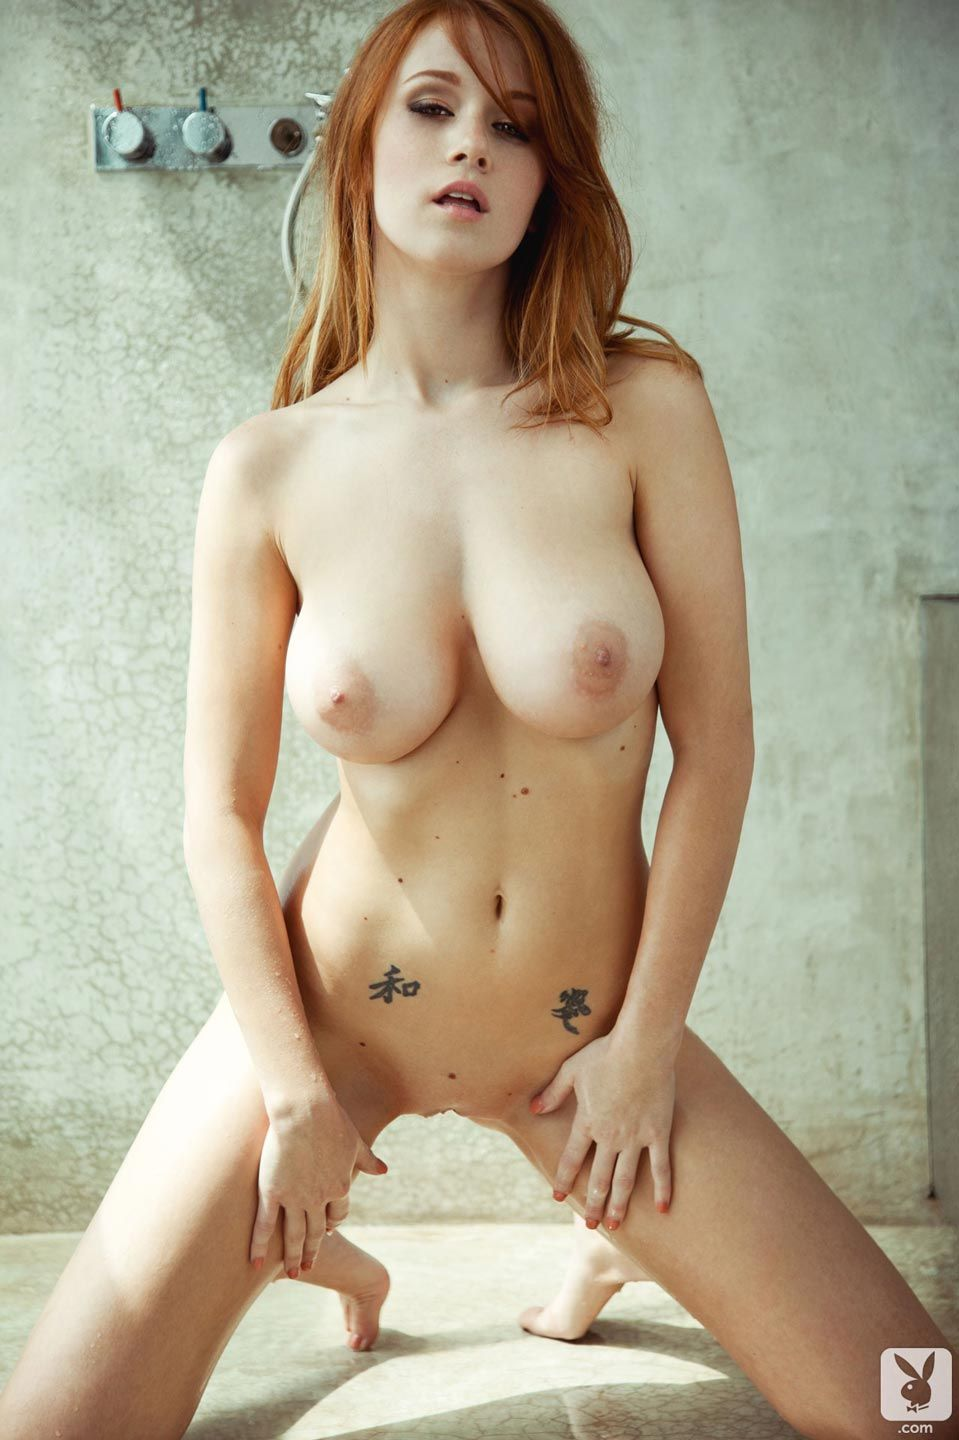 now-thats-merican-babe-leanna-decker-topless-nude-15 (959×1440